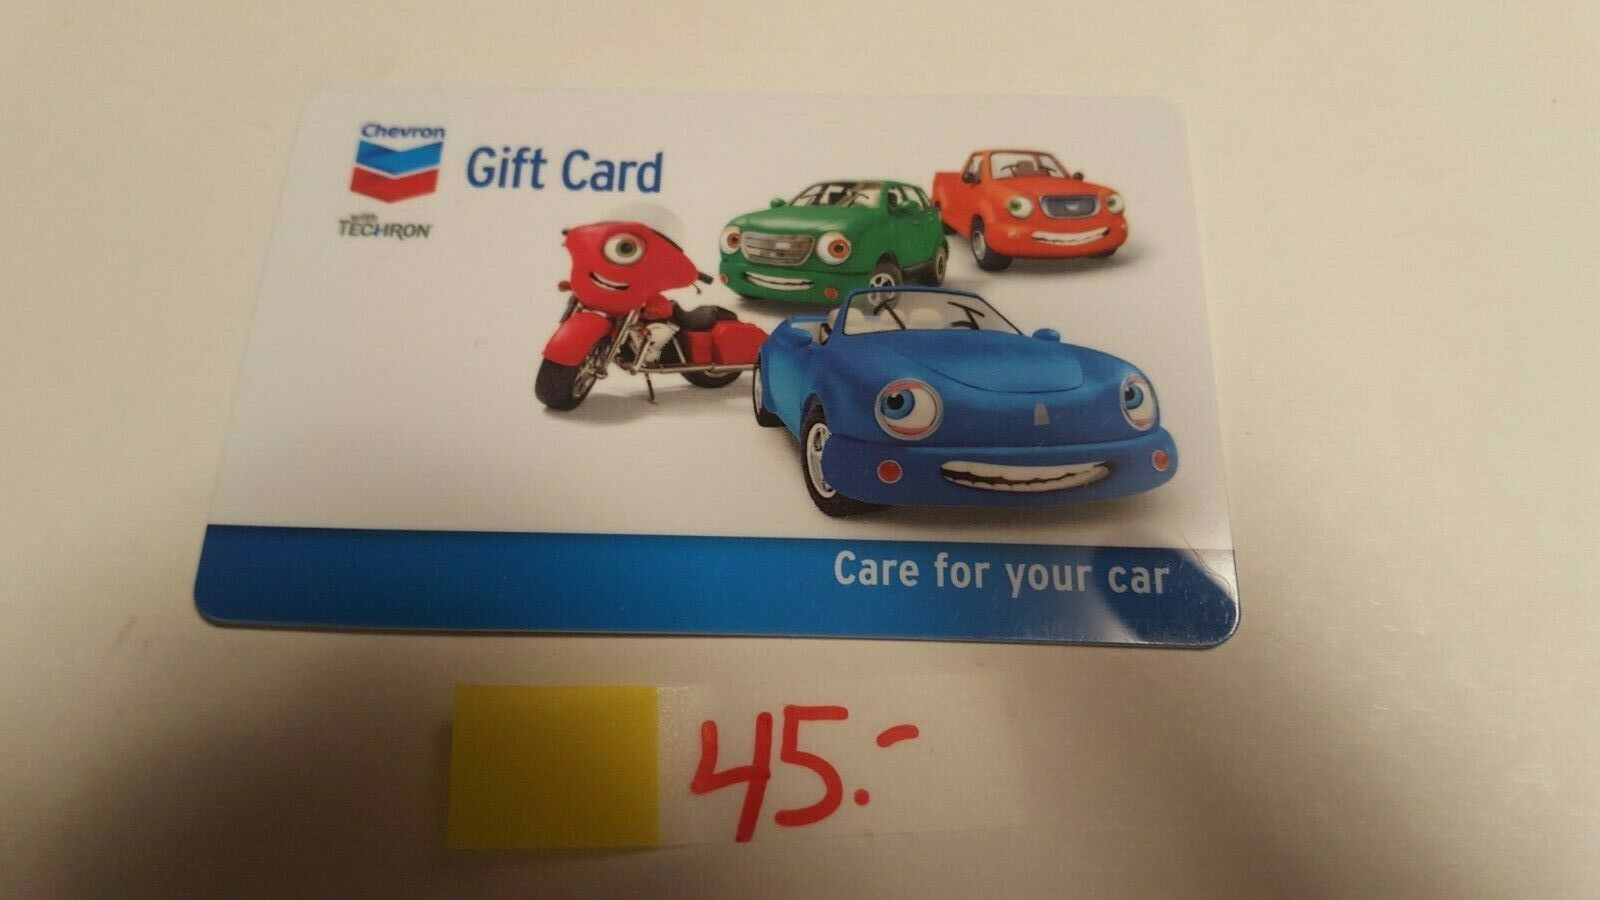 45 CHEVRON / TEXACO Gas Gift Card - No Expiration Date Can Be Used At Either  - $41.11